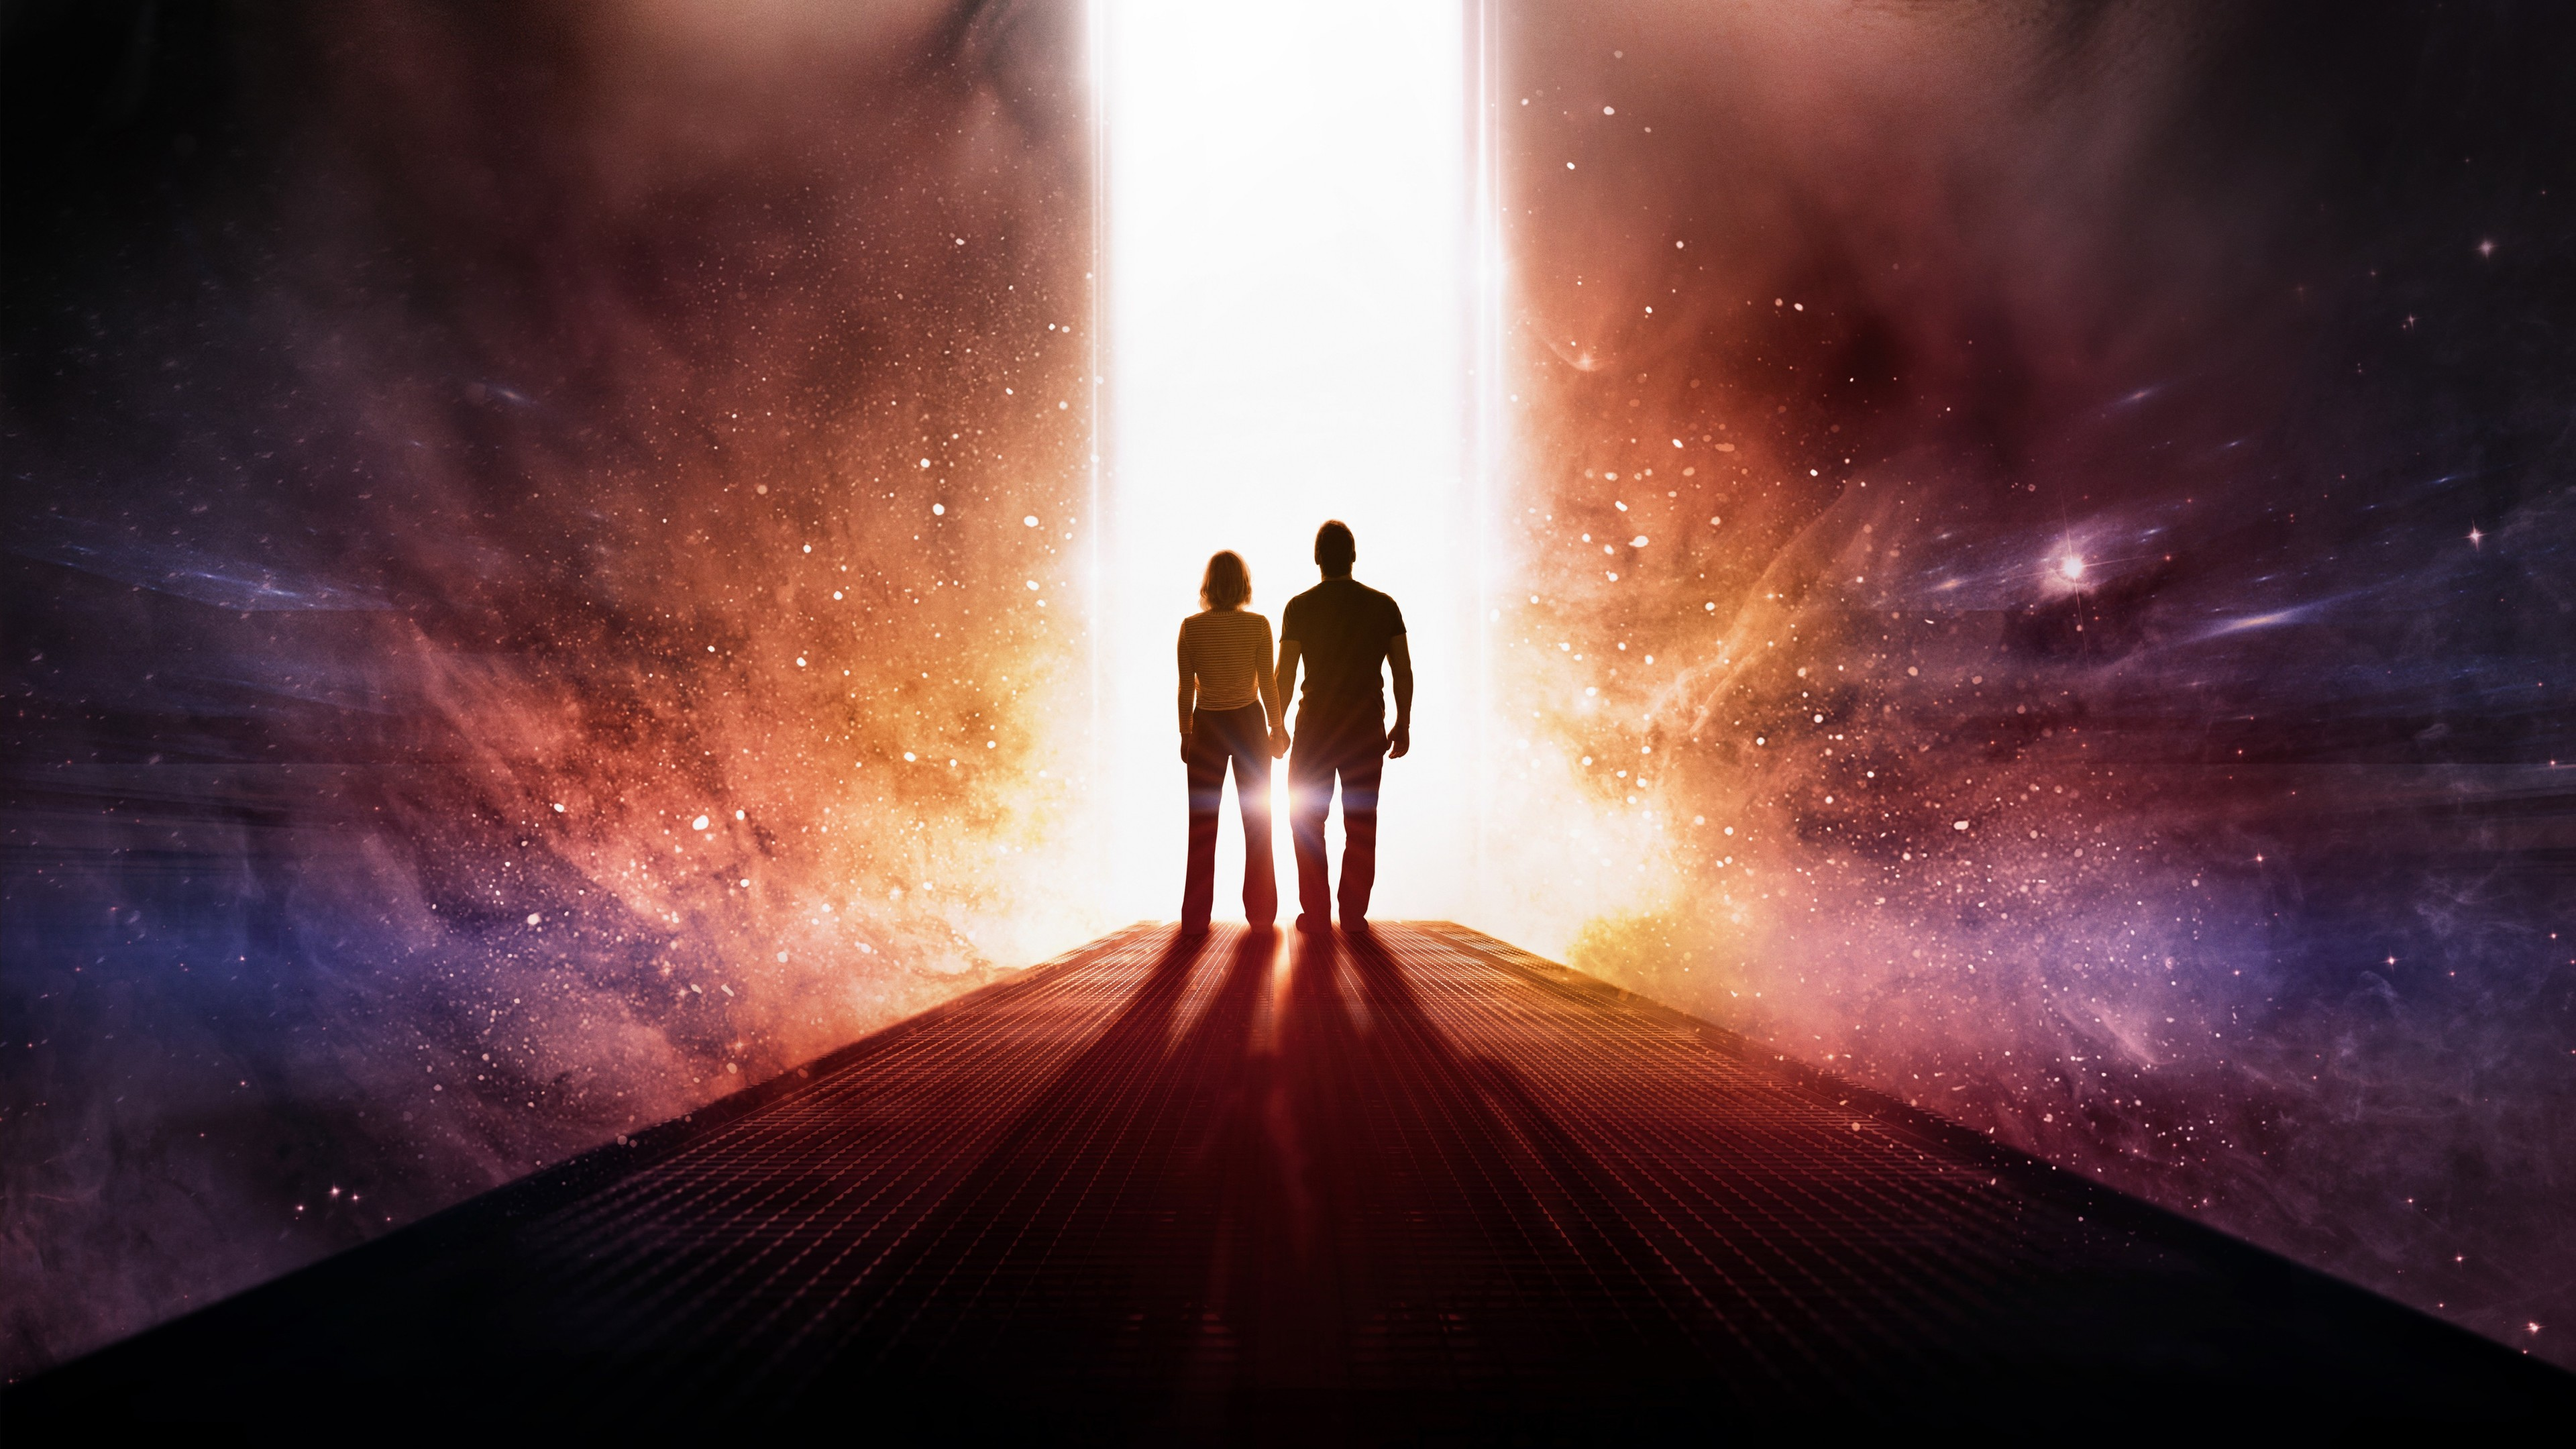 passengers 2016 movie 5k 1536400667 - Passengers 2016 Movie 5k - passengers wallpapers, movies wallpapers, jennifer lawrence wallpapers, chris pratt wallpapers, 2016 movies wallpapers